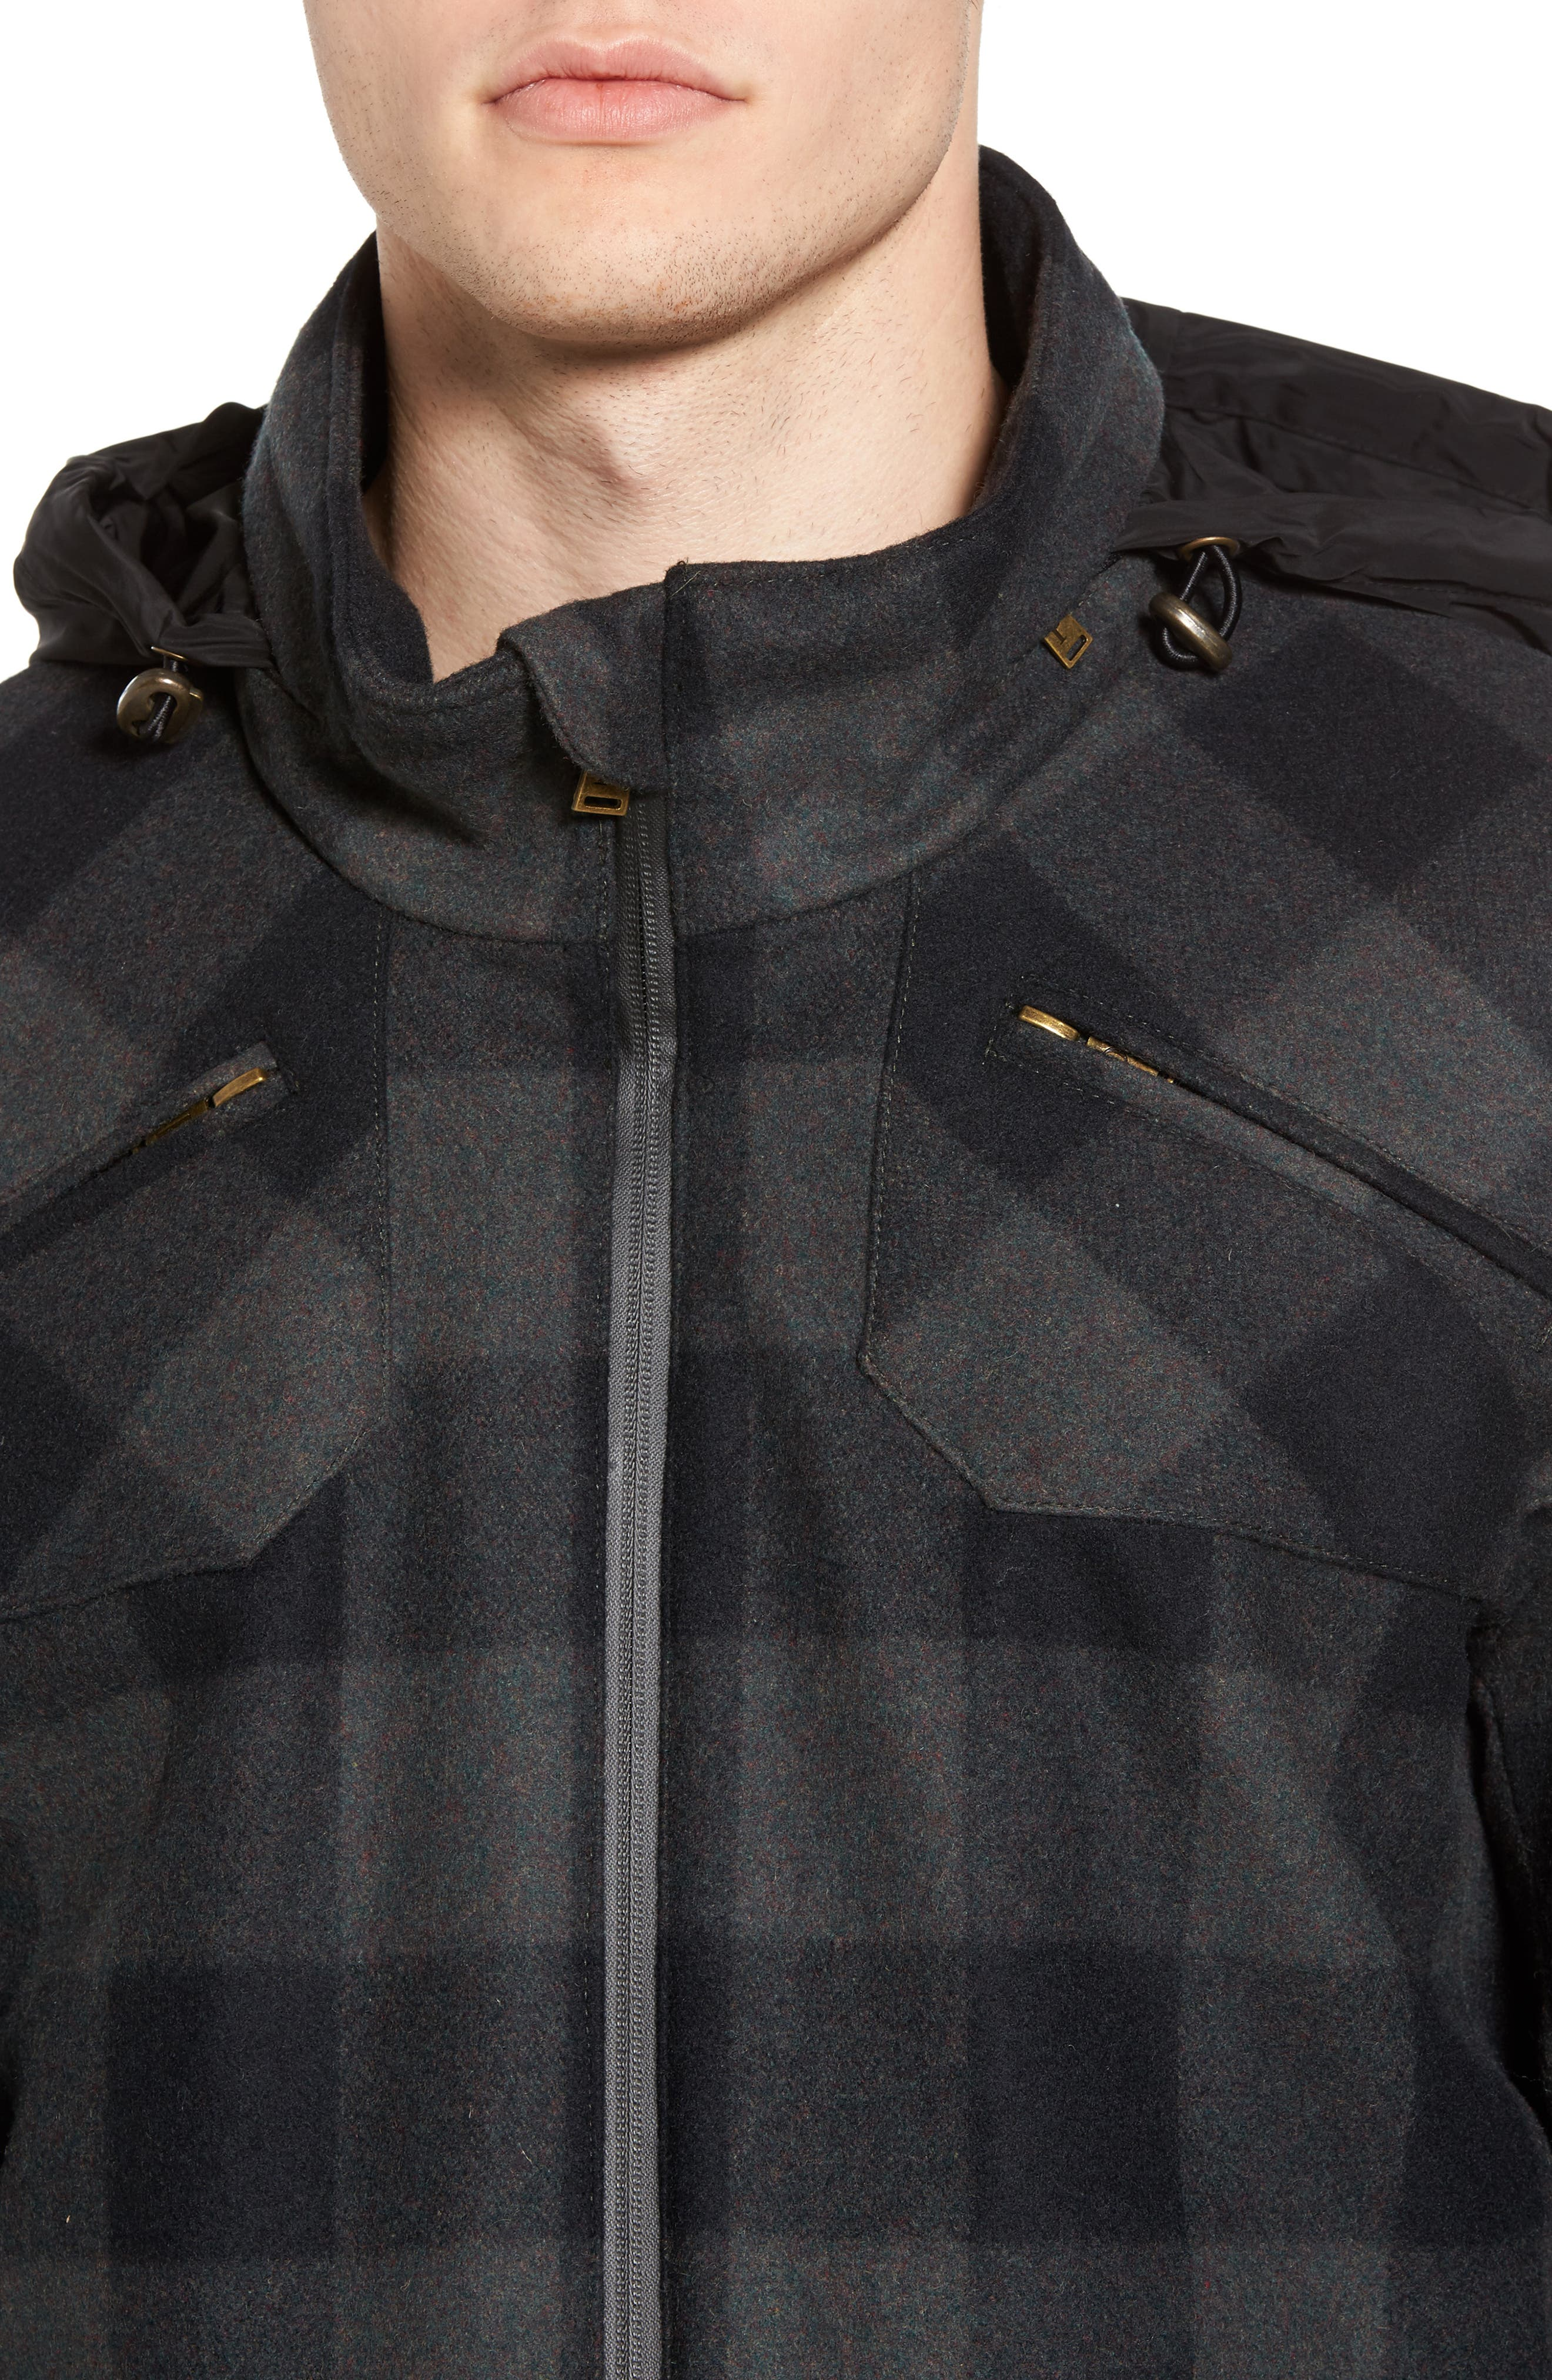 Albuquerque Jacket,                             Alternate thumbnail 4, color,                             Olive Buffalo Plaid